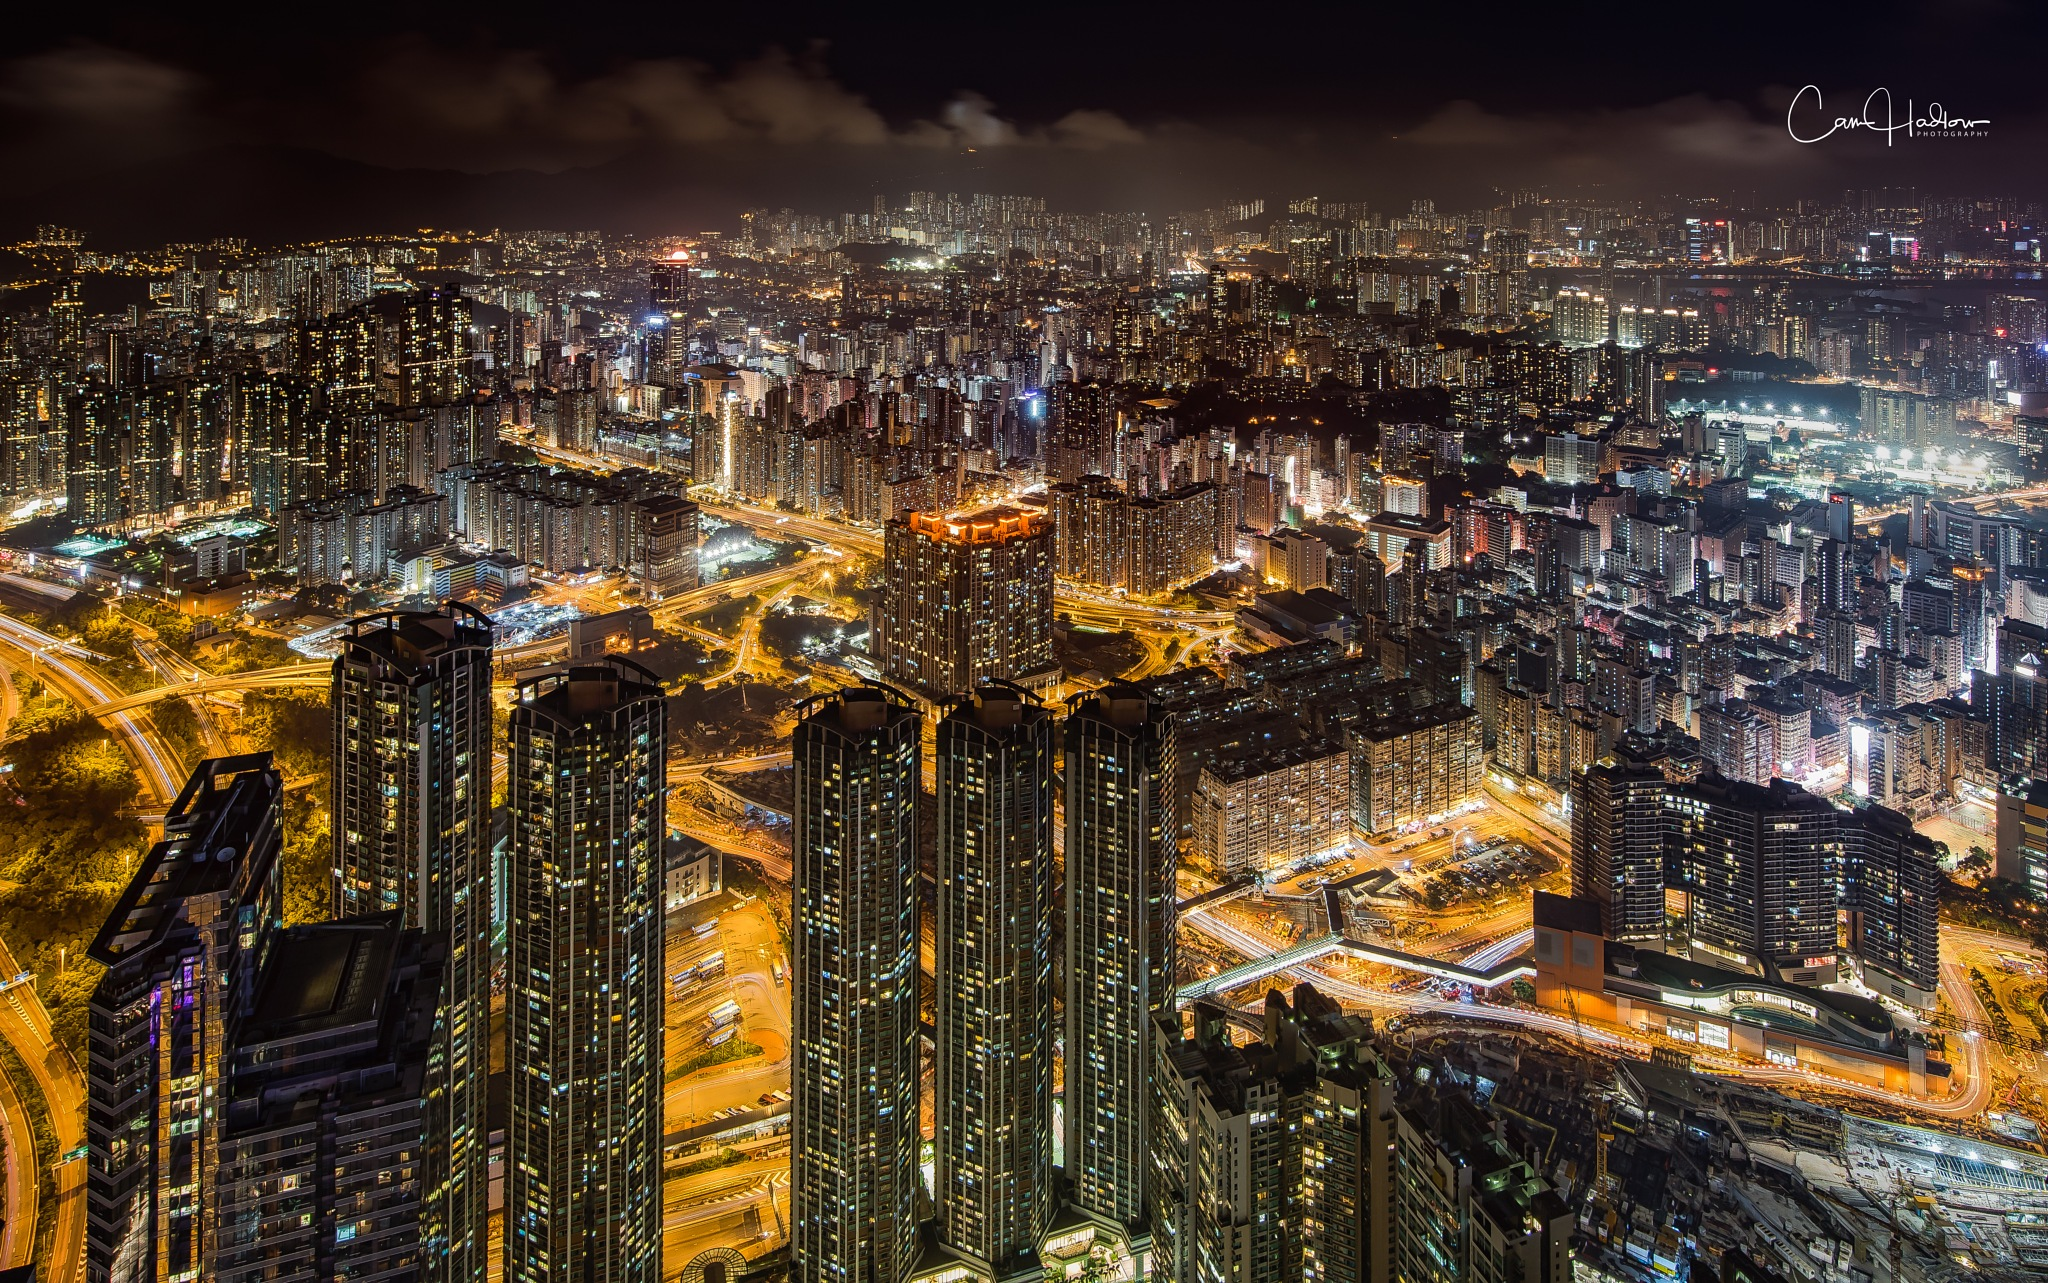 Kowloon by night by CamHadlowPhotography